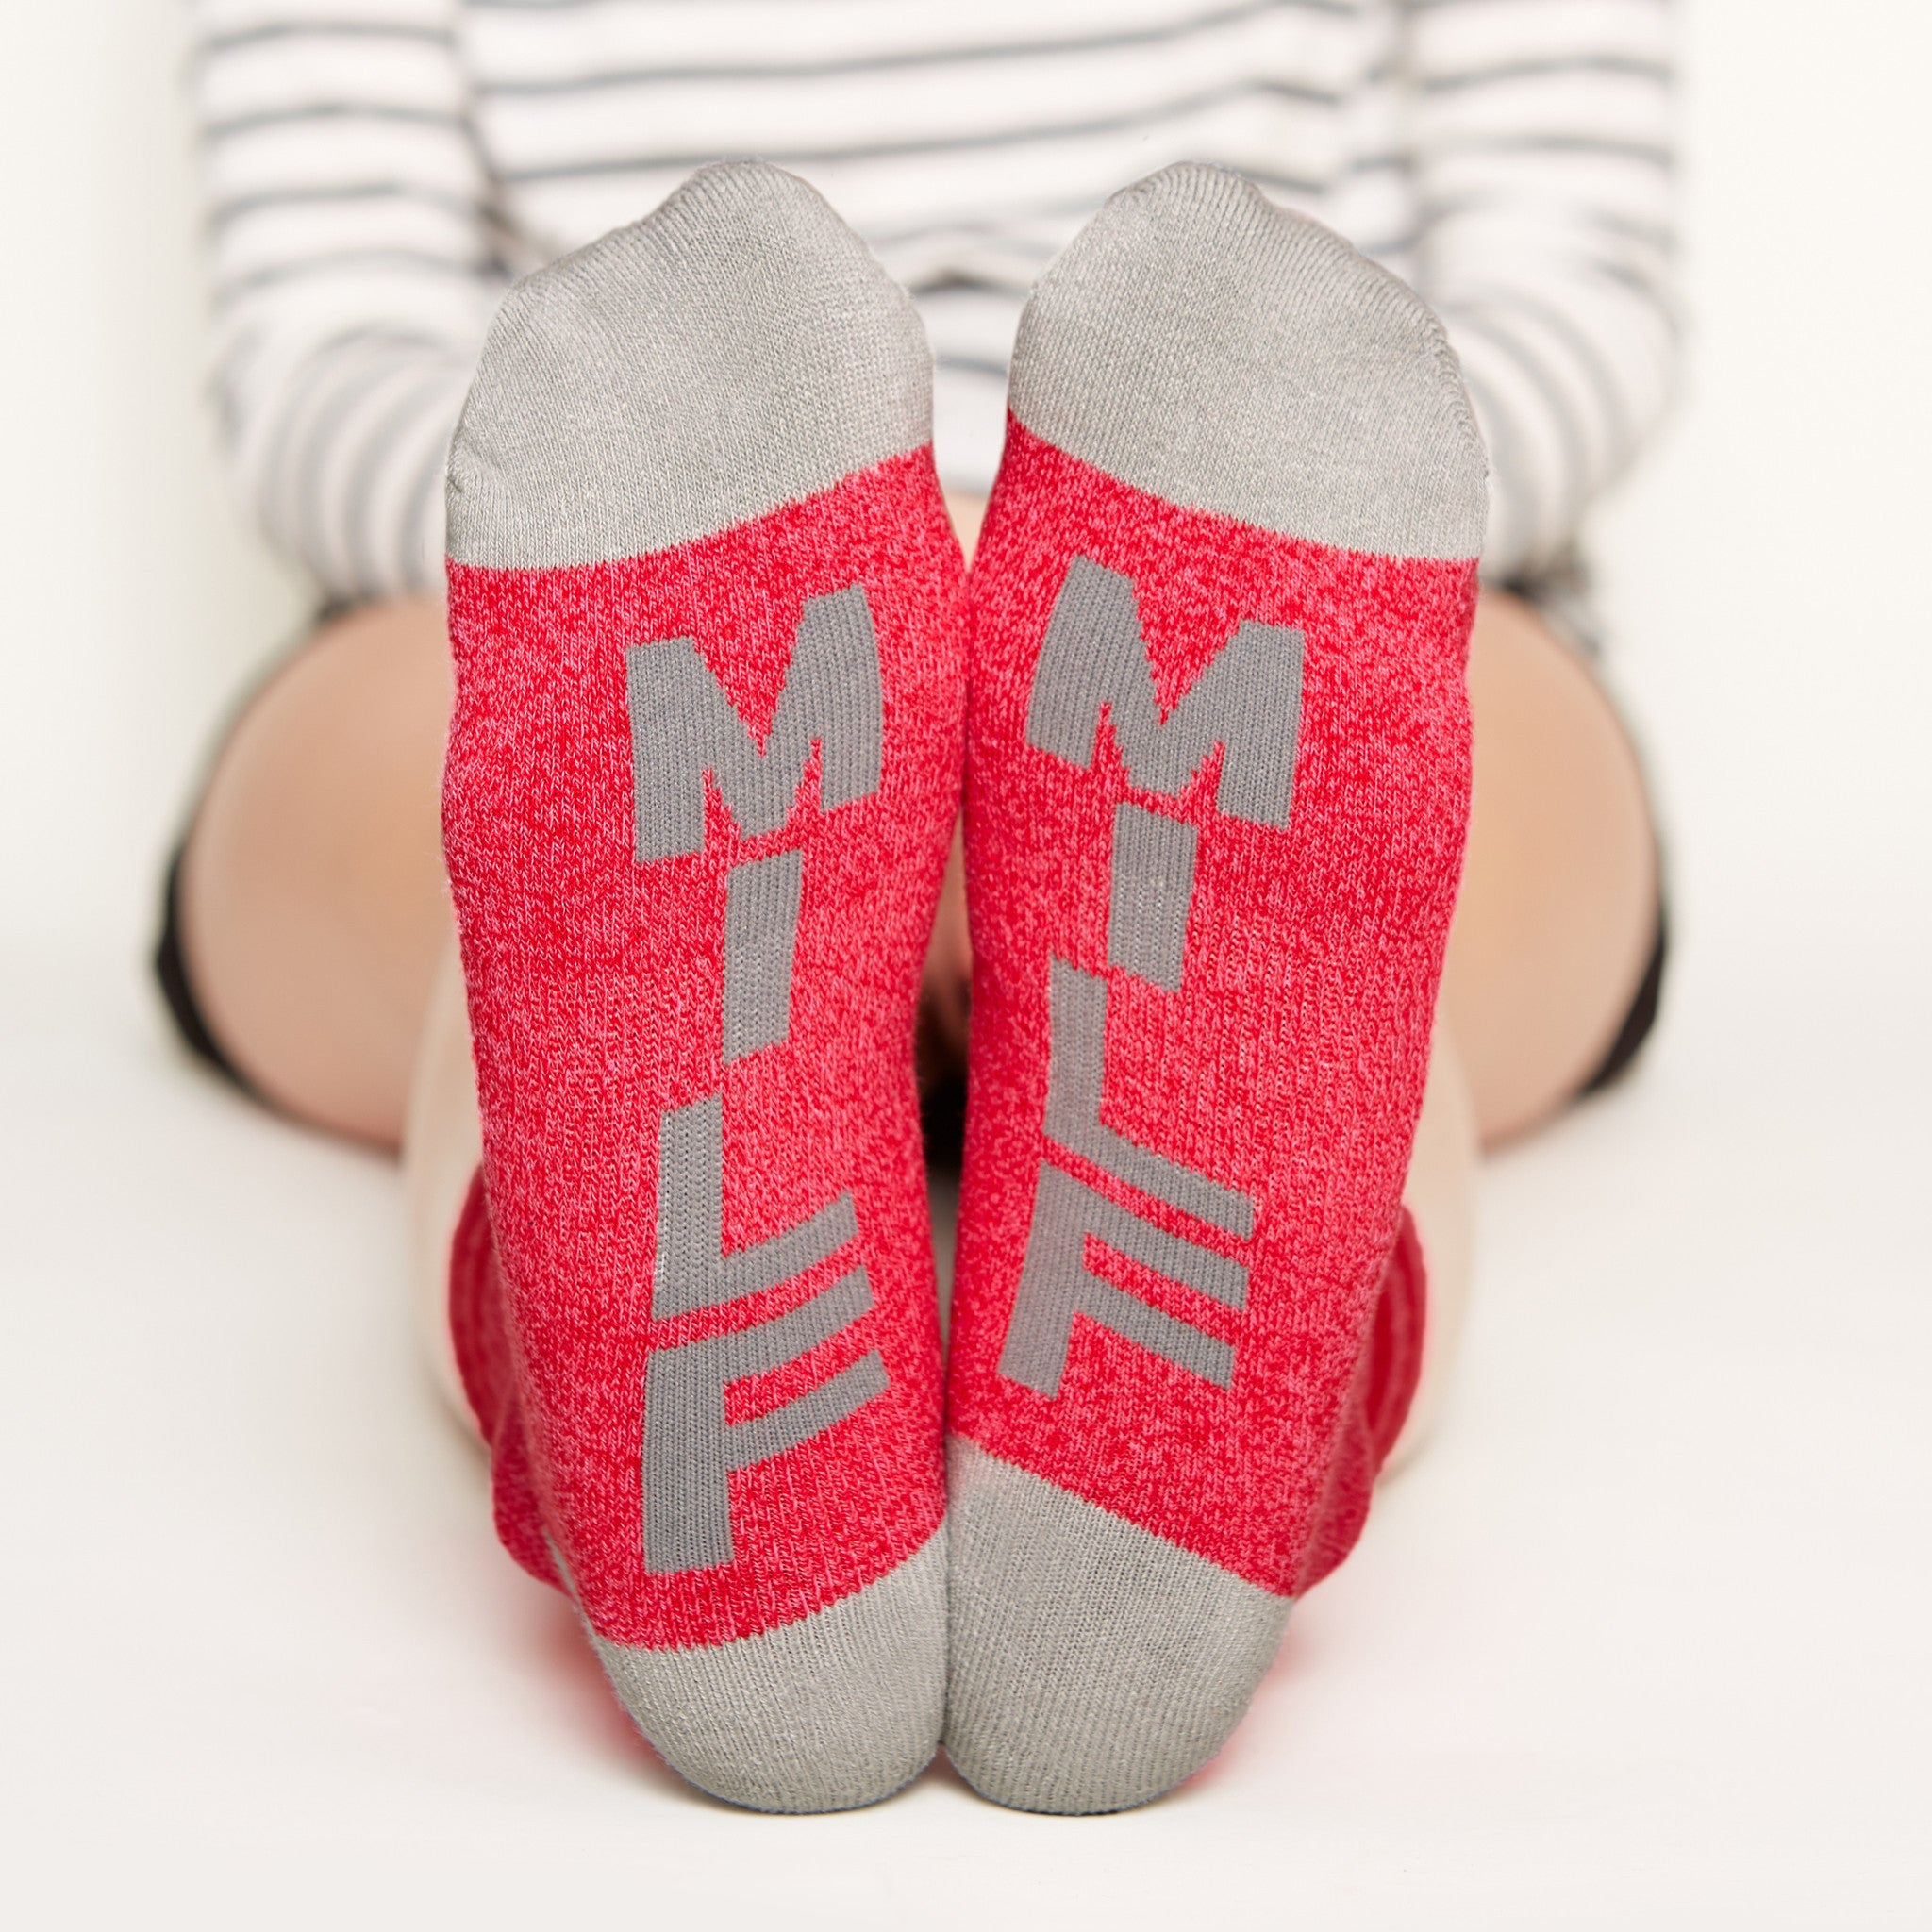 Socks for Mom Gift Set #1, milf bottom front view